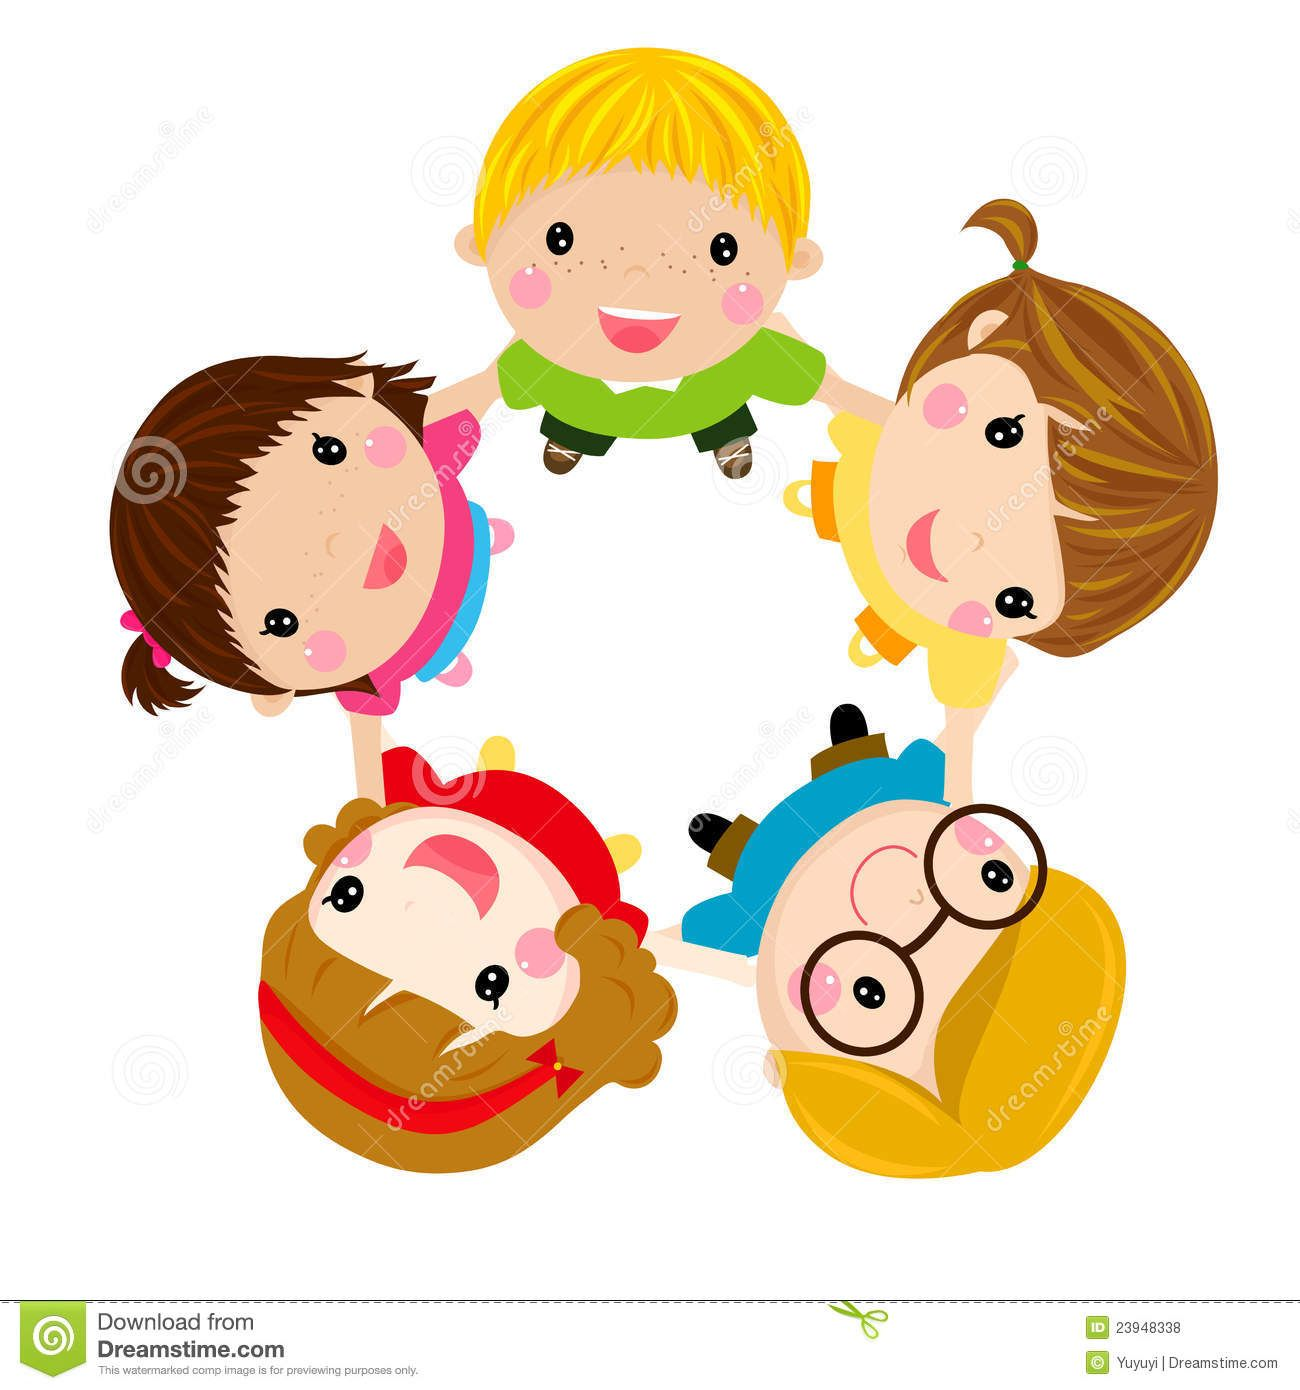 children holding hands animation Google Search Friends